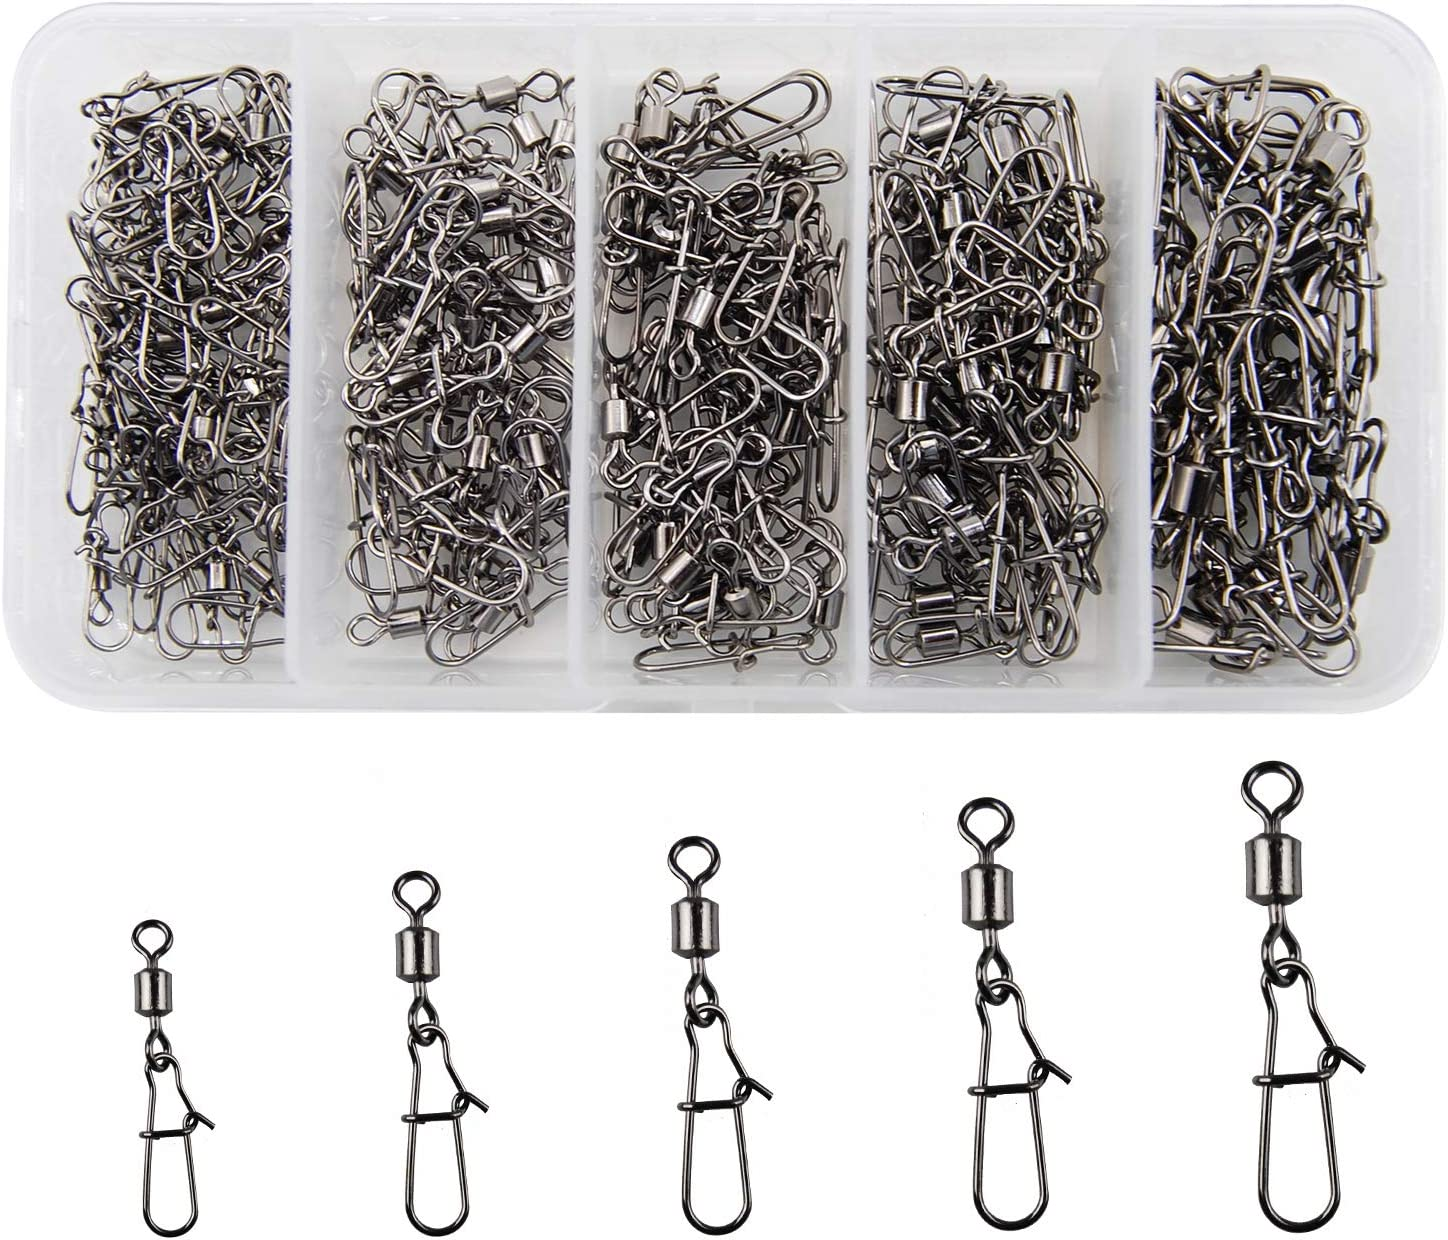 50pcs Rolling swivel with hanging snap fishing tackle Tackle connector D4L9